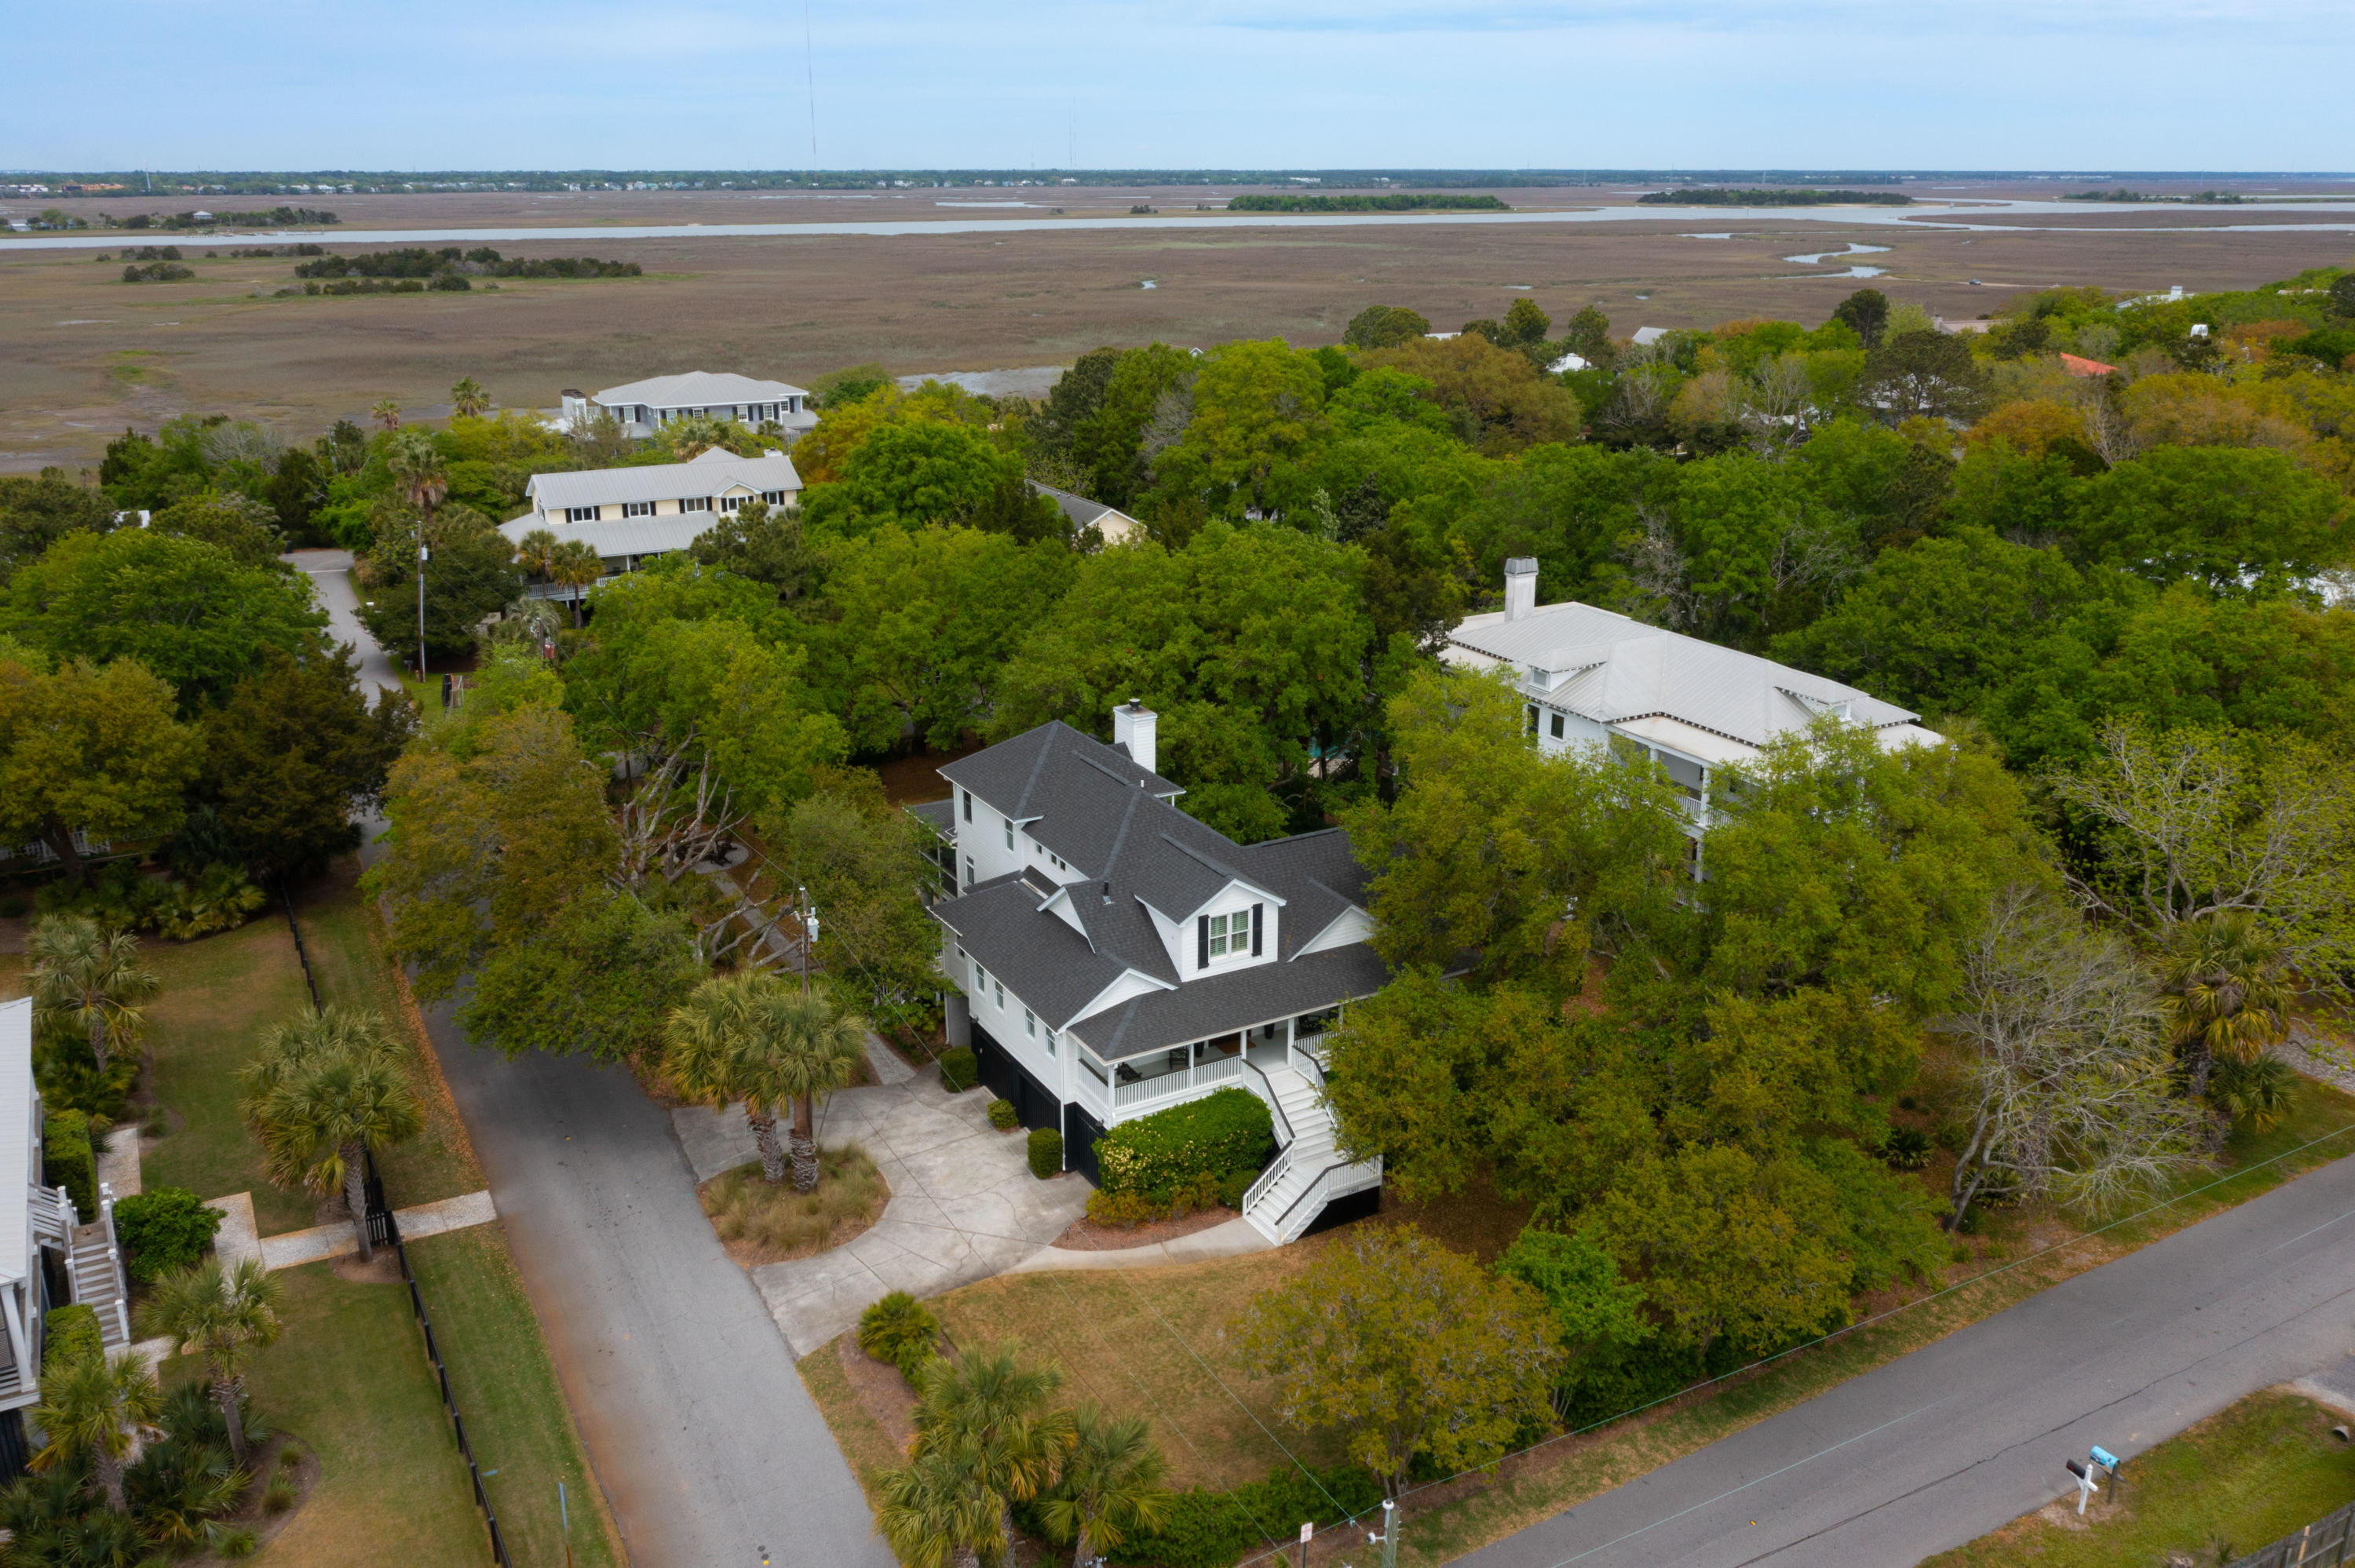 2302 Myrtle Ave, Sullivans Island, 29482, 4 Bedrooms Bedrooms, ,3 BathroomsBathrooms,For Sale,Myrtle Ave,21011967